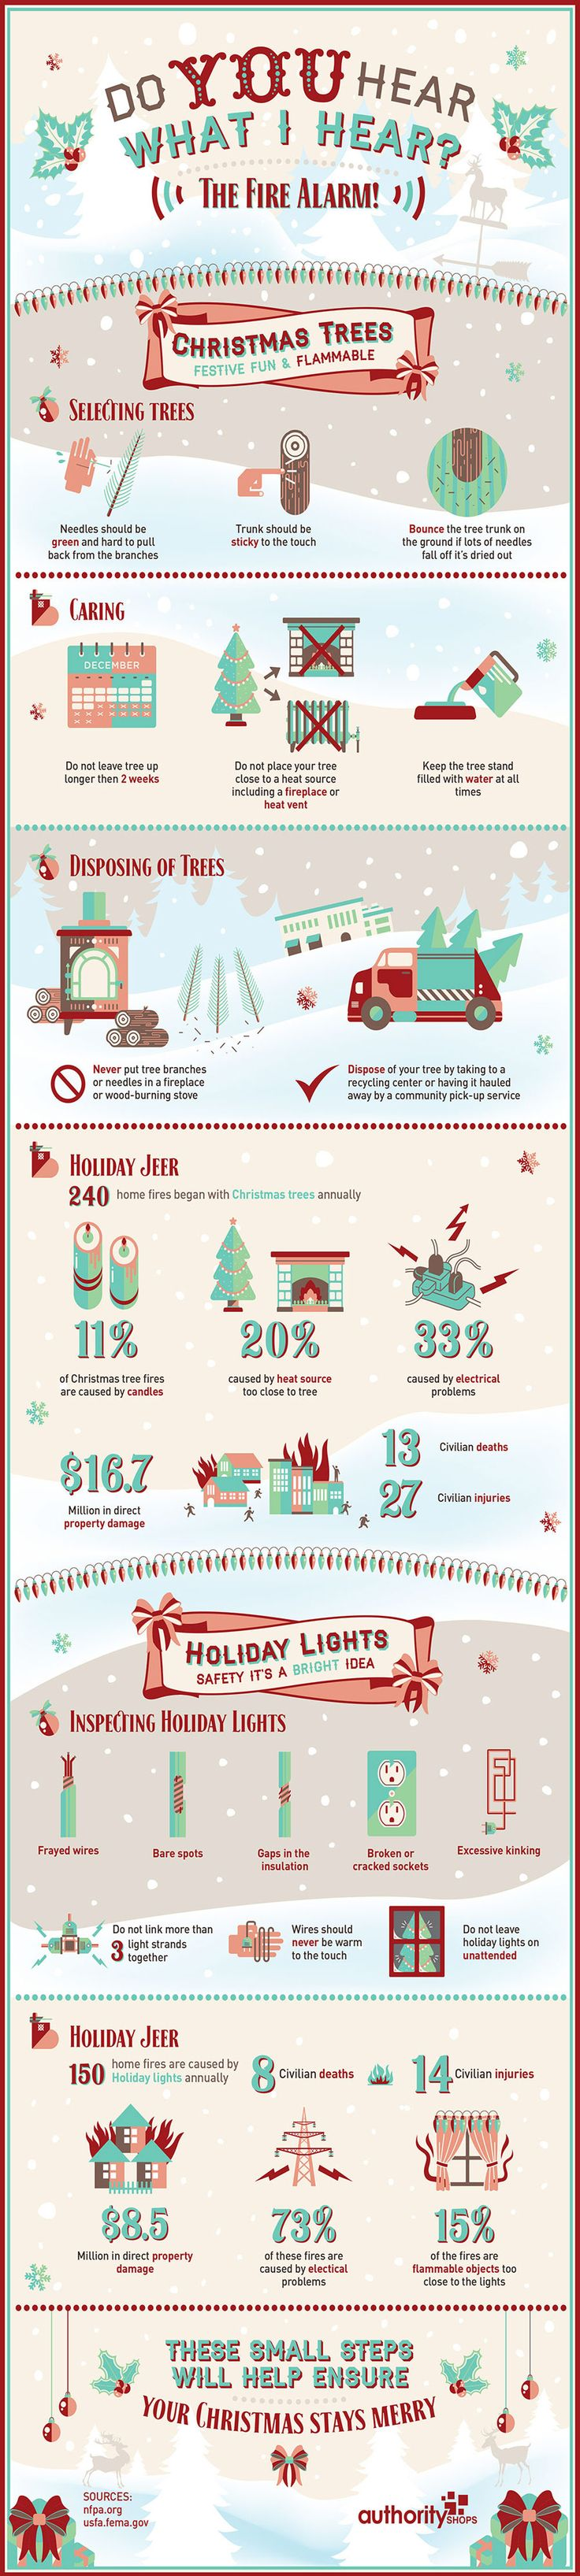 16 best Fire Safety images on Pinterest | Fire prevention, Fire ...